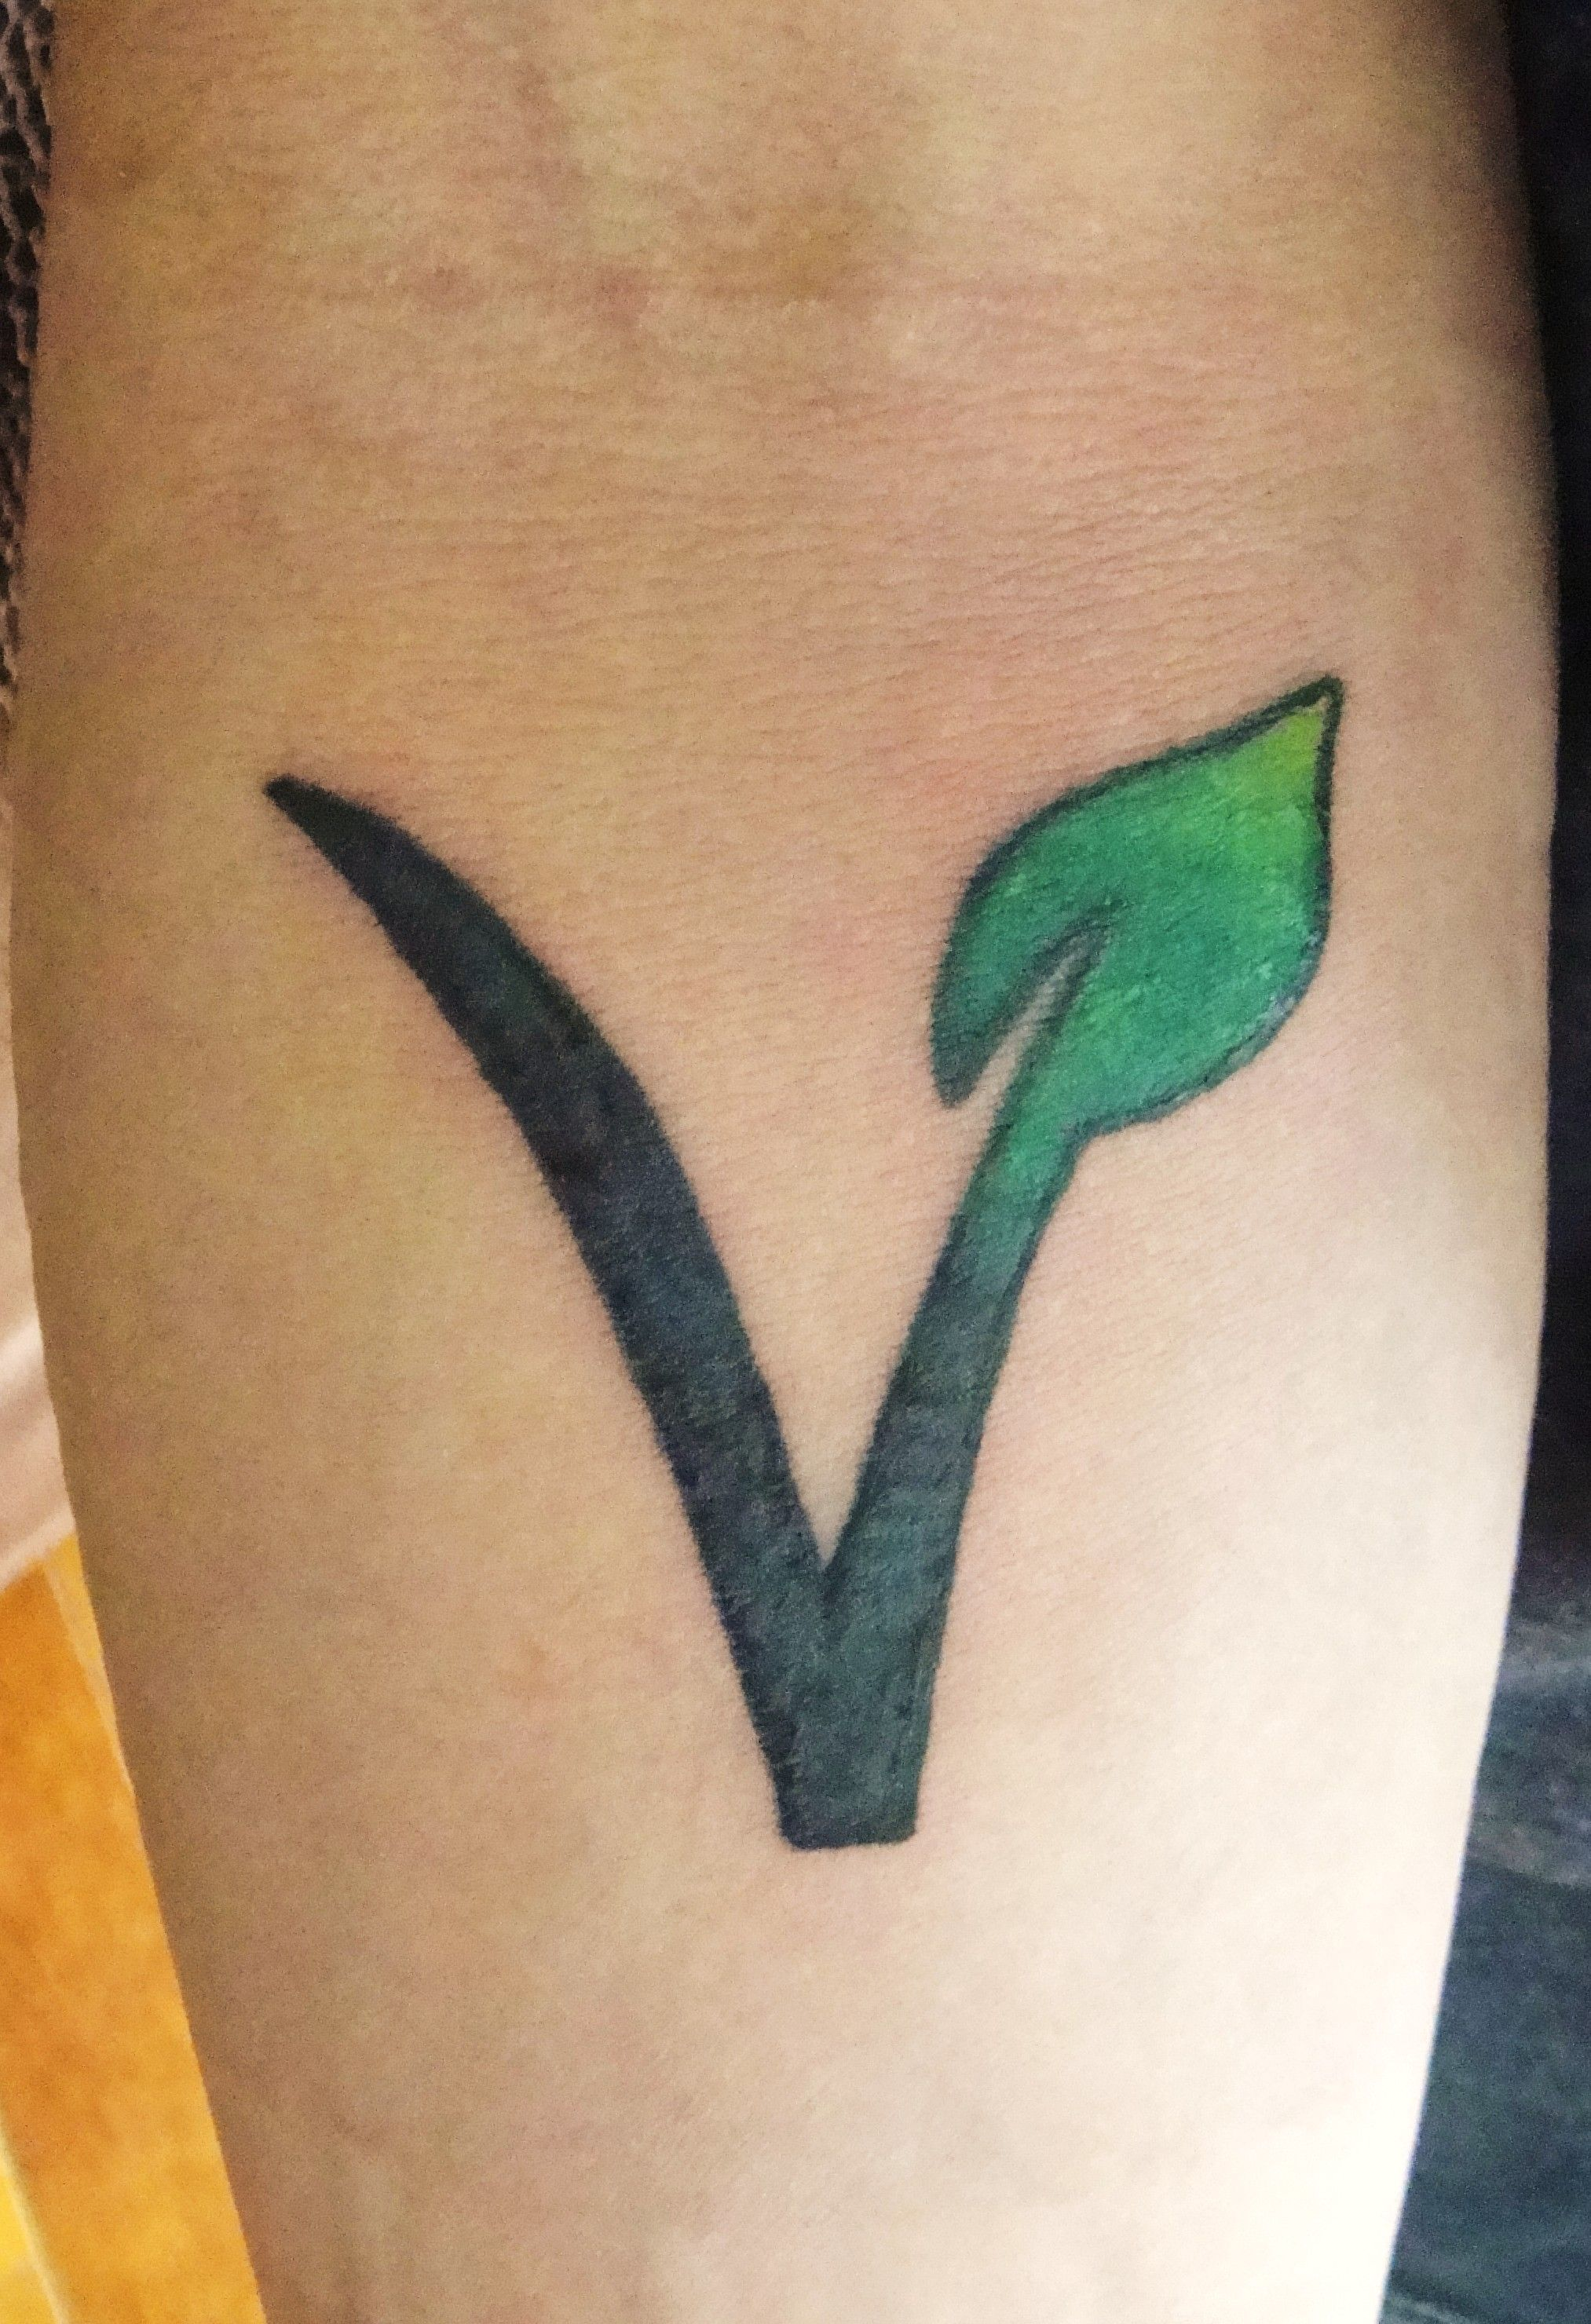 vegan symbol---This is Pretty cool  Might get this one